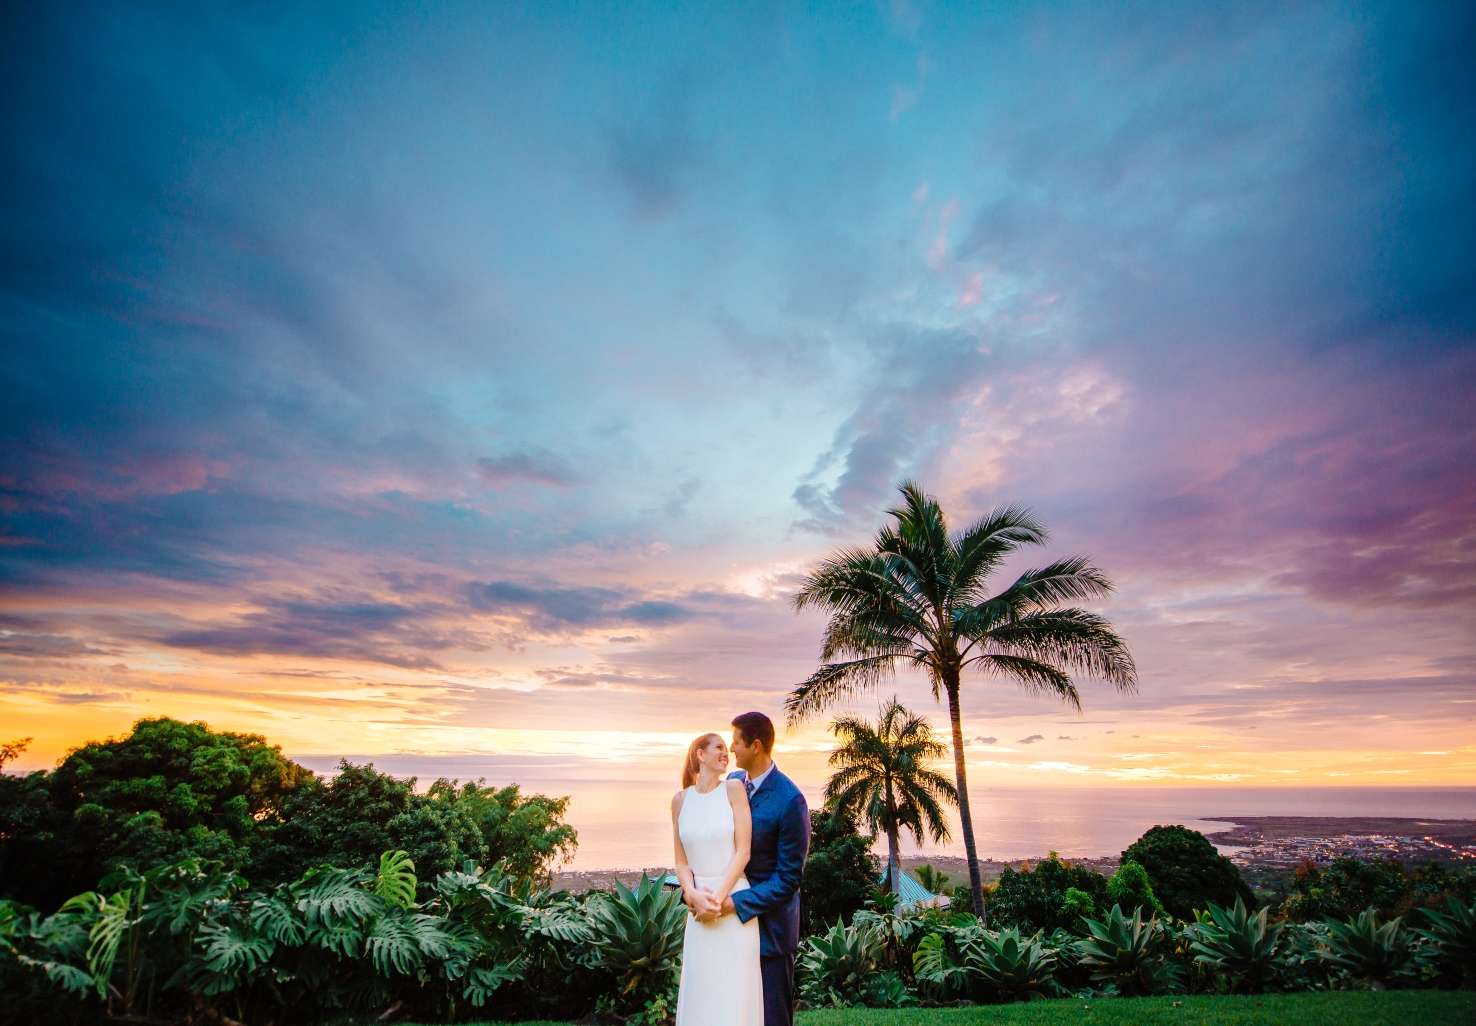 Romantic Tropical Wedding Venue with Couple at Sunset